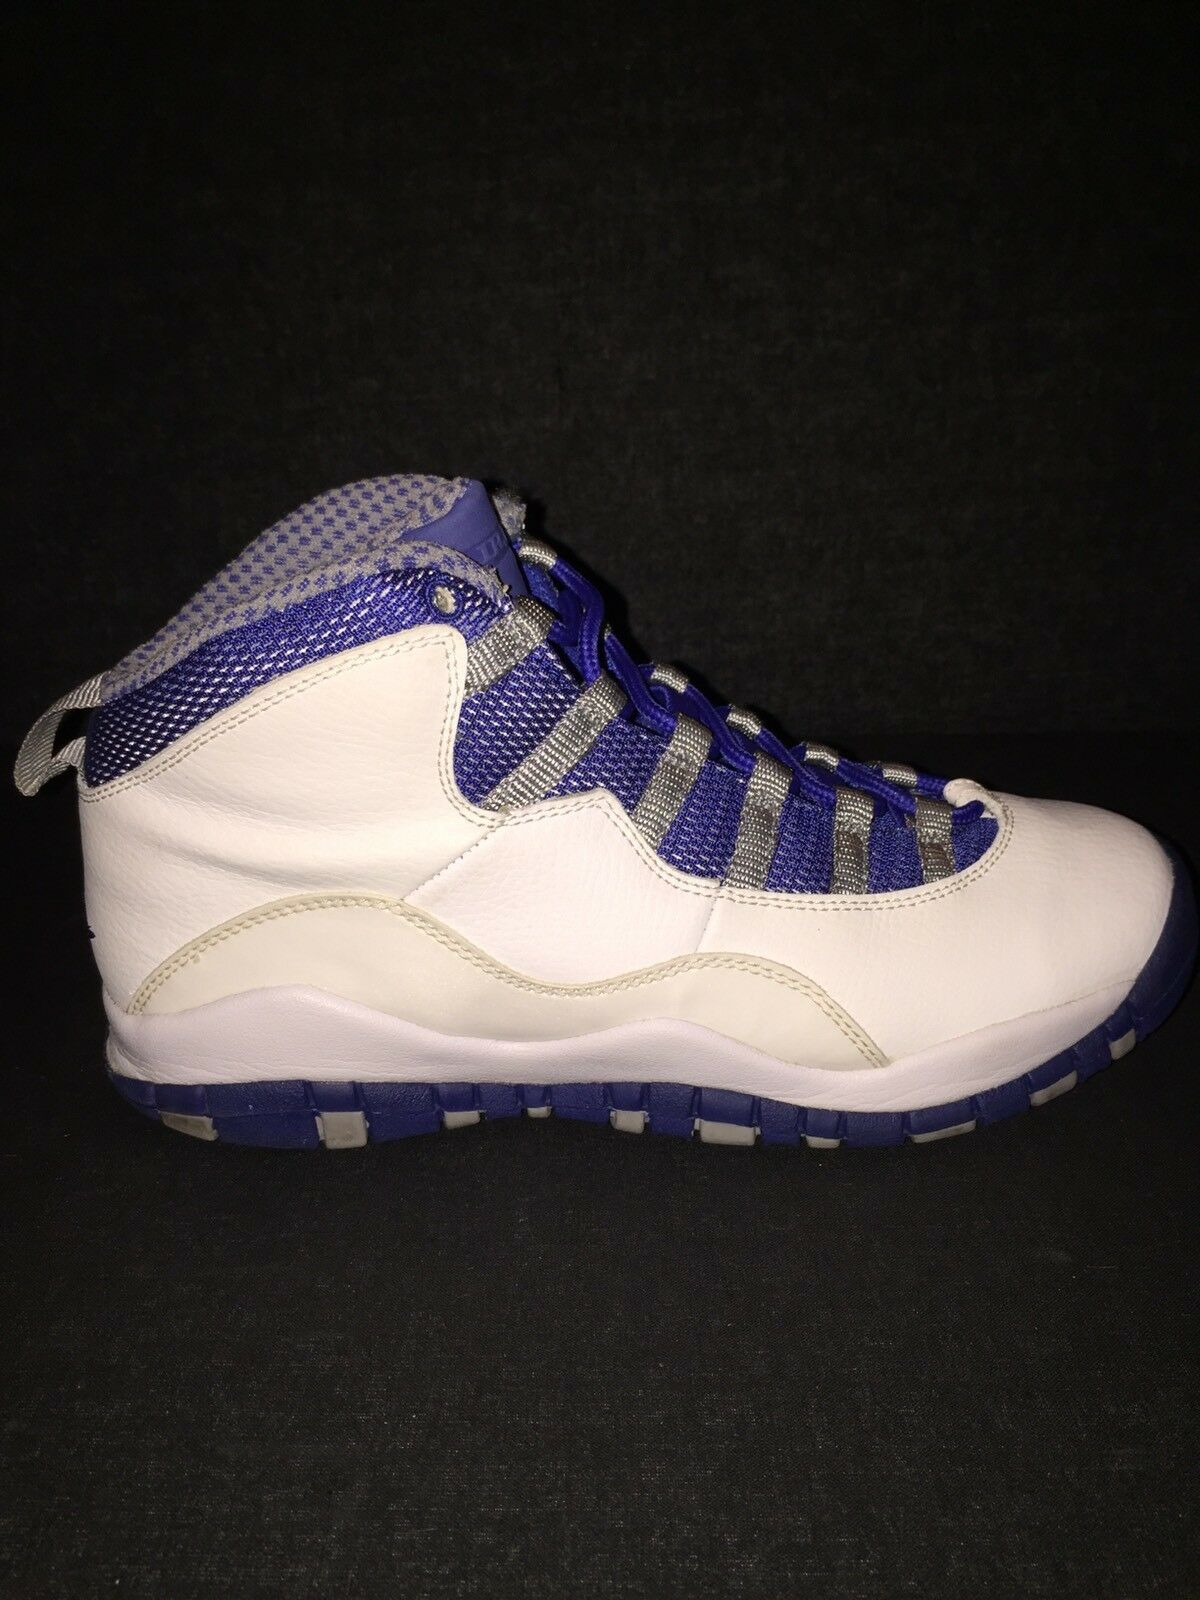 Nike Air Jordan Retro OG Blue Steel 10s Comfortable New shoes for men and women, limited time discount